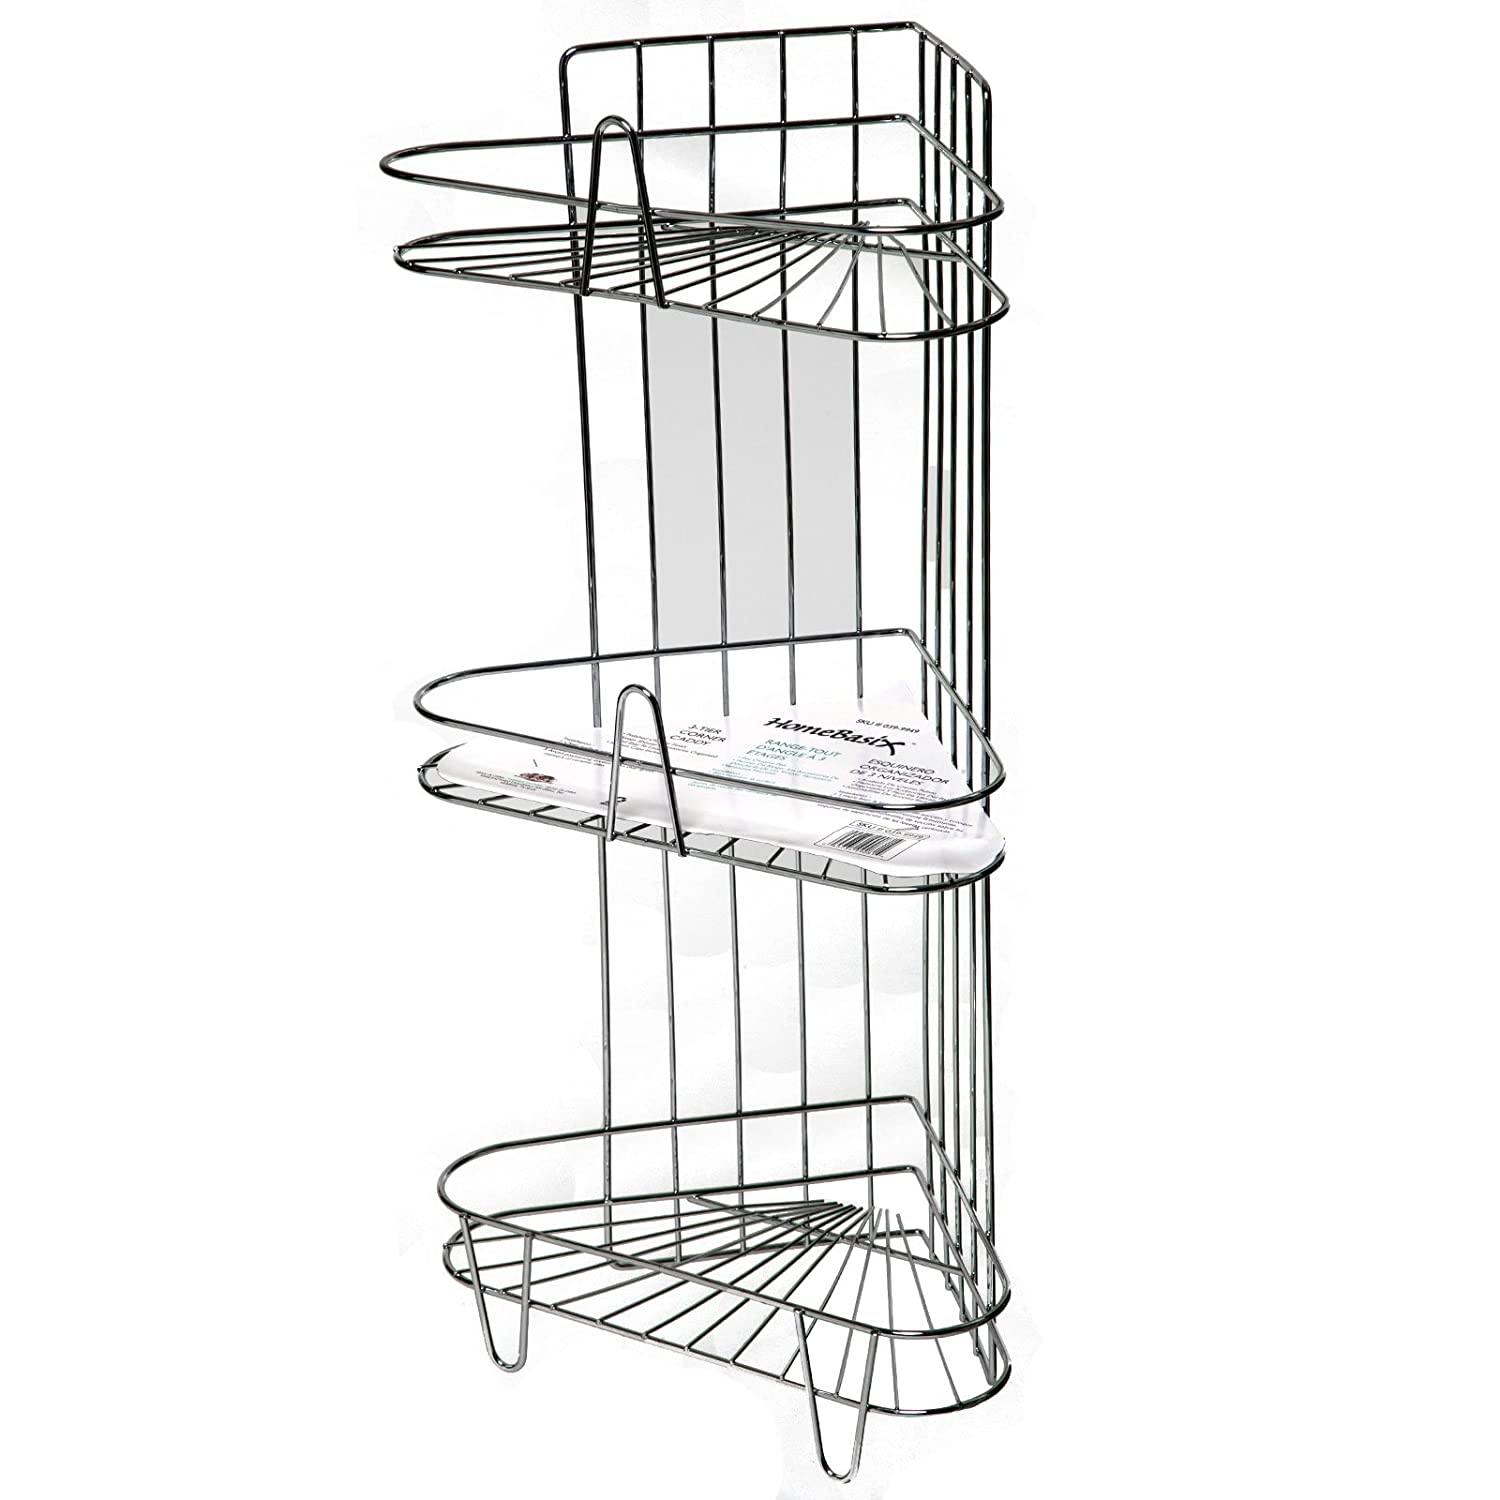 Amazon.com: Three Tier Shower Caddy, Chrome: Home & Kitchen